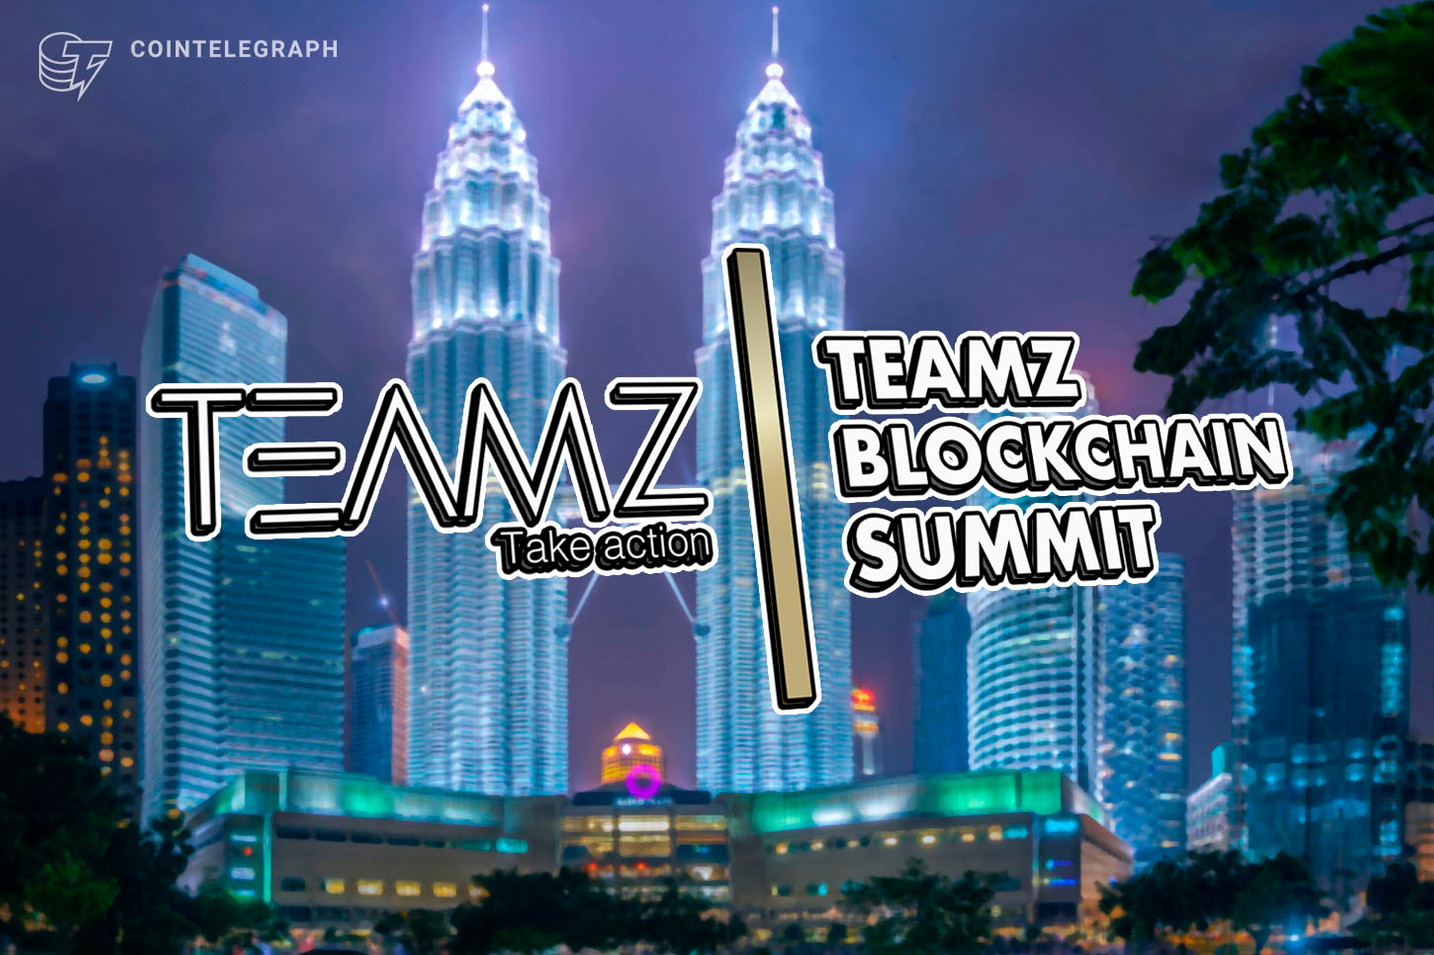 Japan's Most Influential Blockchain Summit Is Coming to Kuala Lumpur